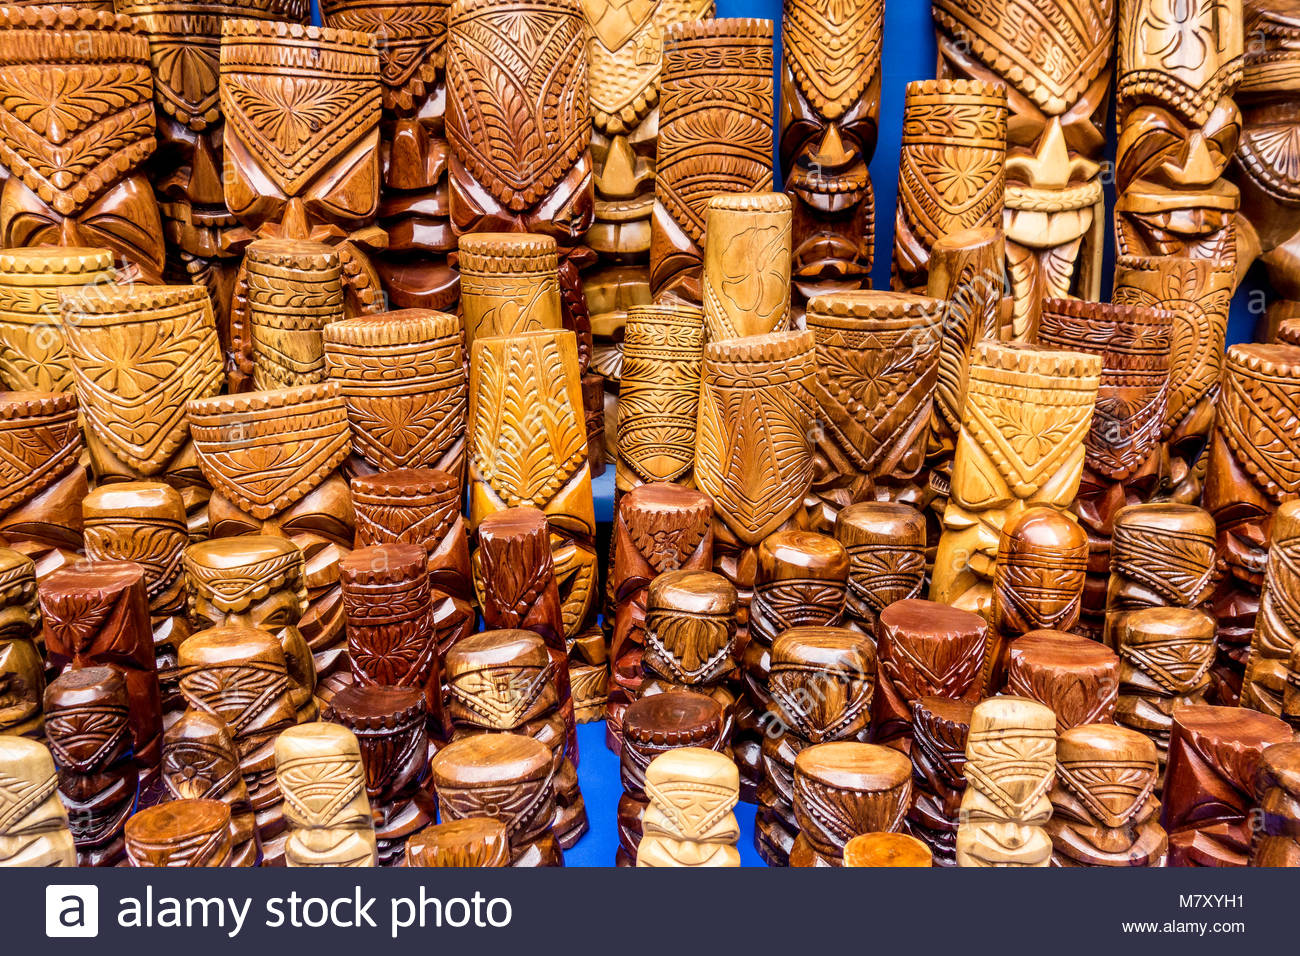 Tiki Hawaiian culture statues for sale in Lahaina on the island of Maui in the State of Hawaii USA Stock Photo